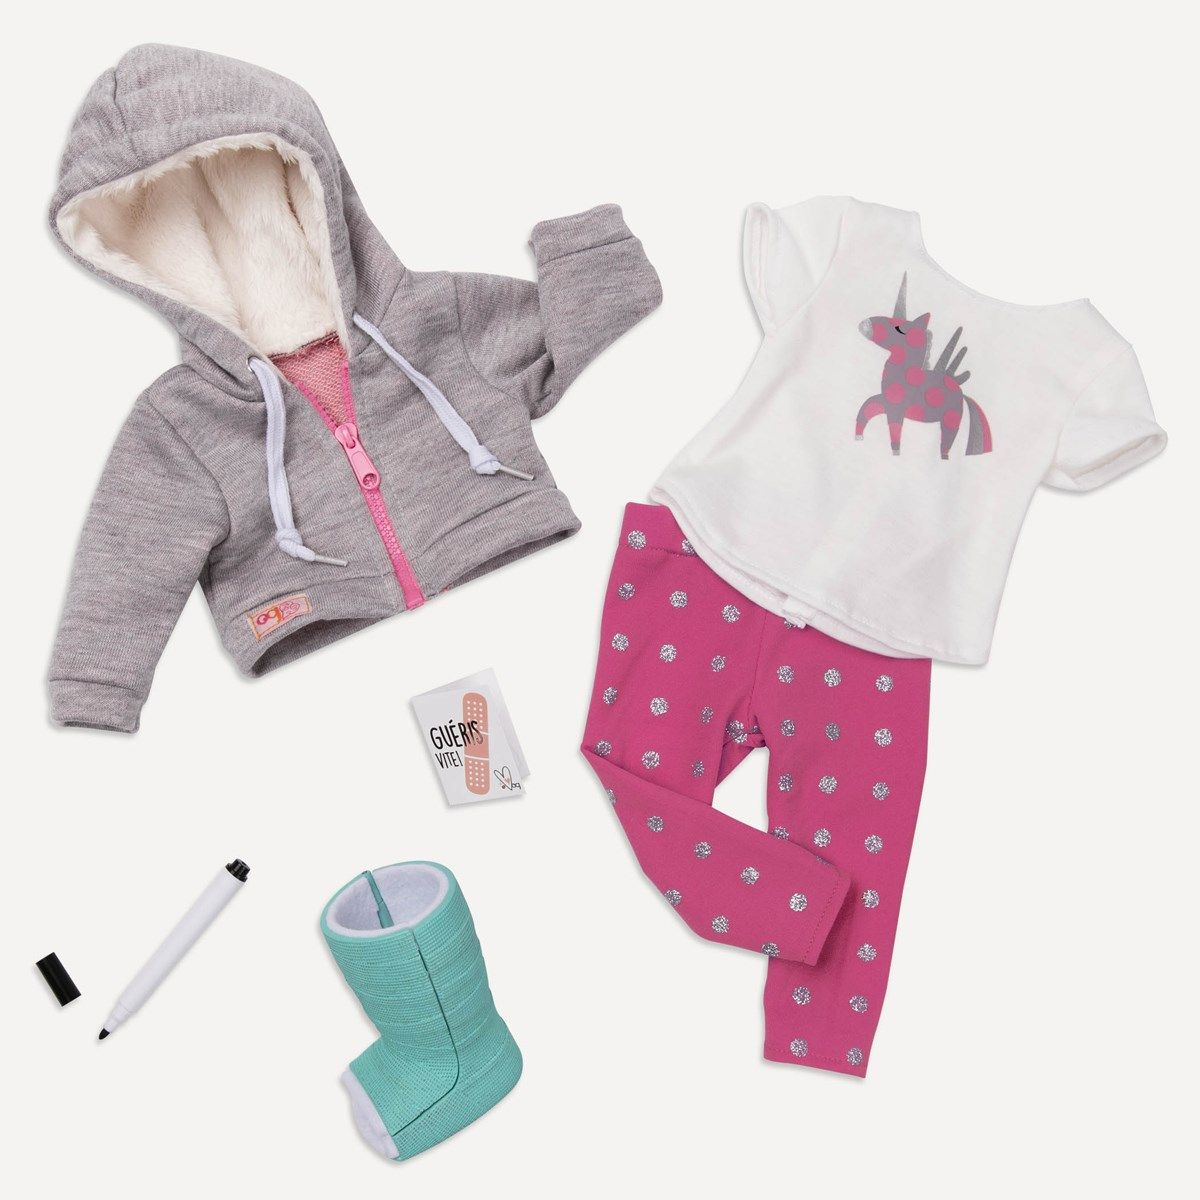 Our Generation Deluxe get well soon outfit